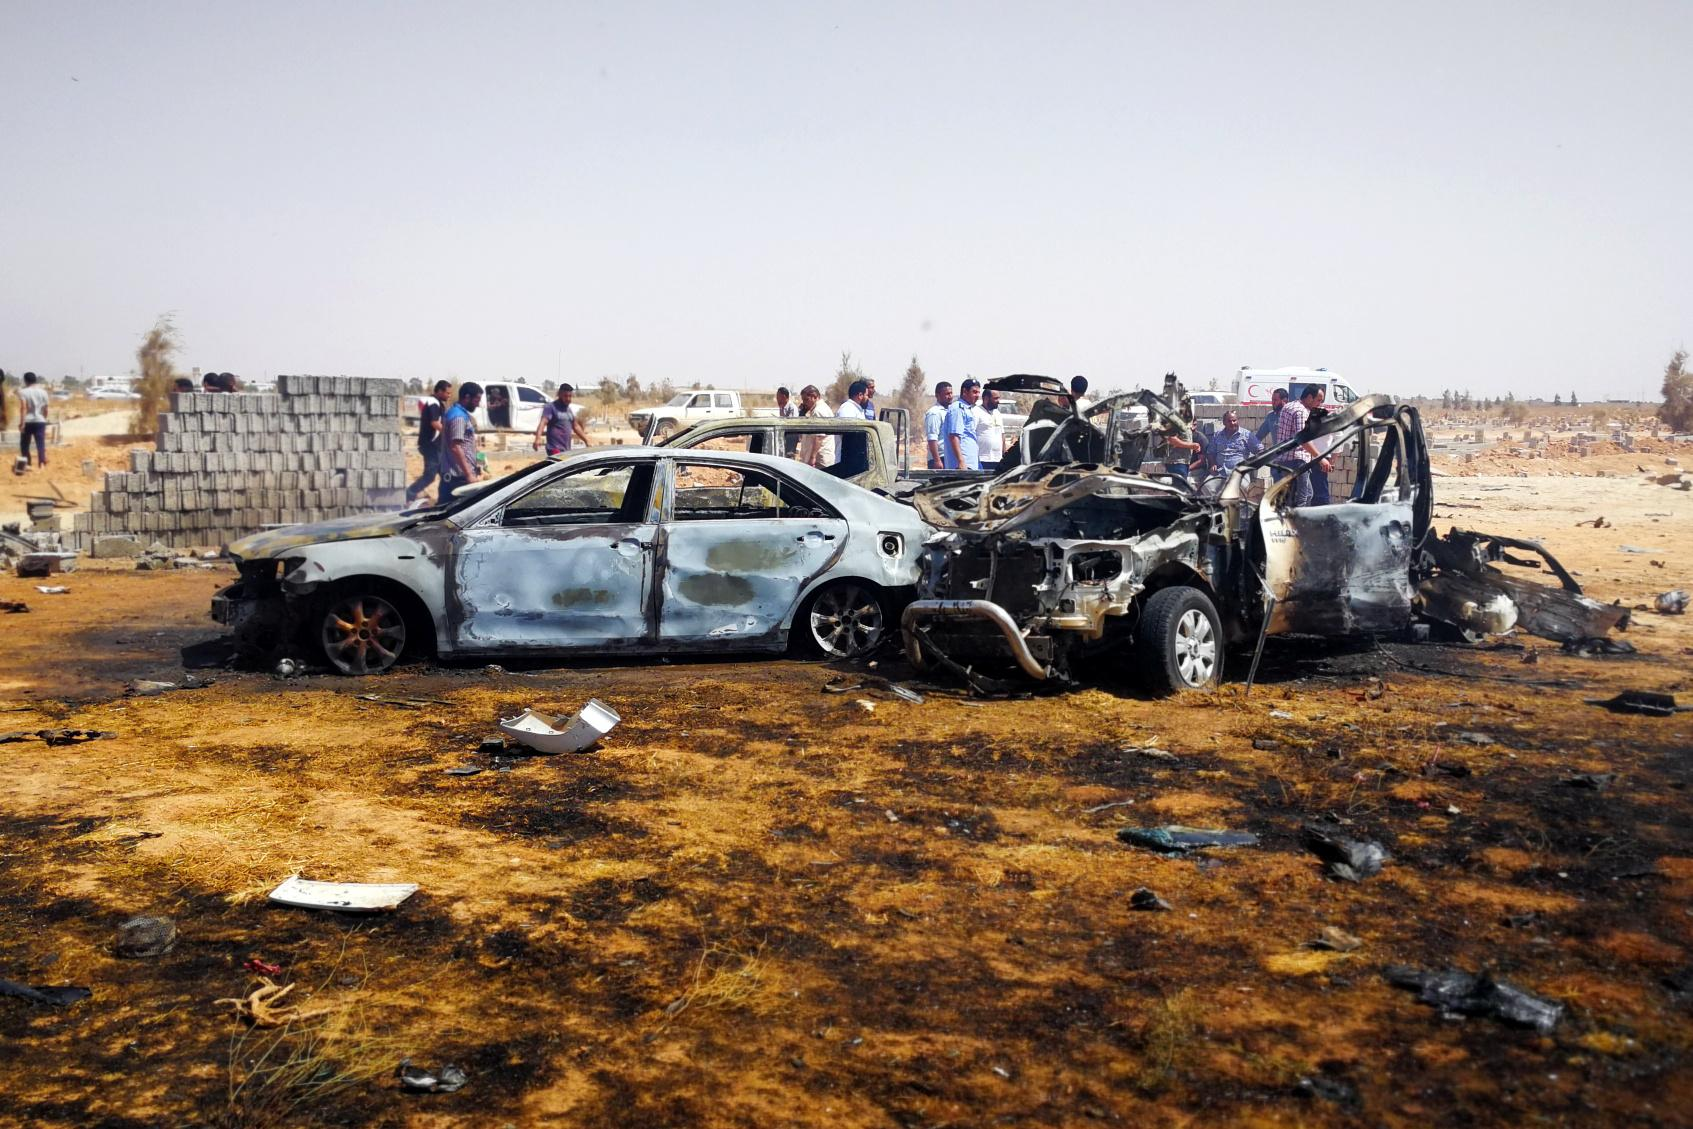 Four killed as car bomb targets funeral in Libya's Benghazi - sources